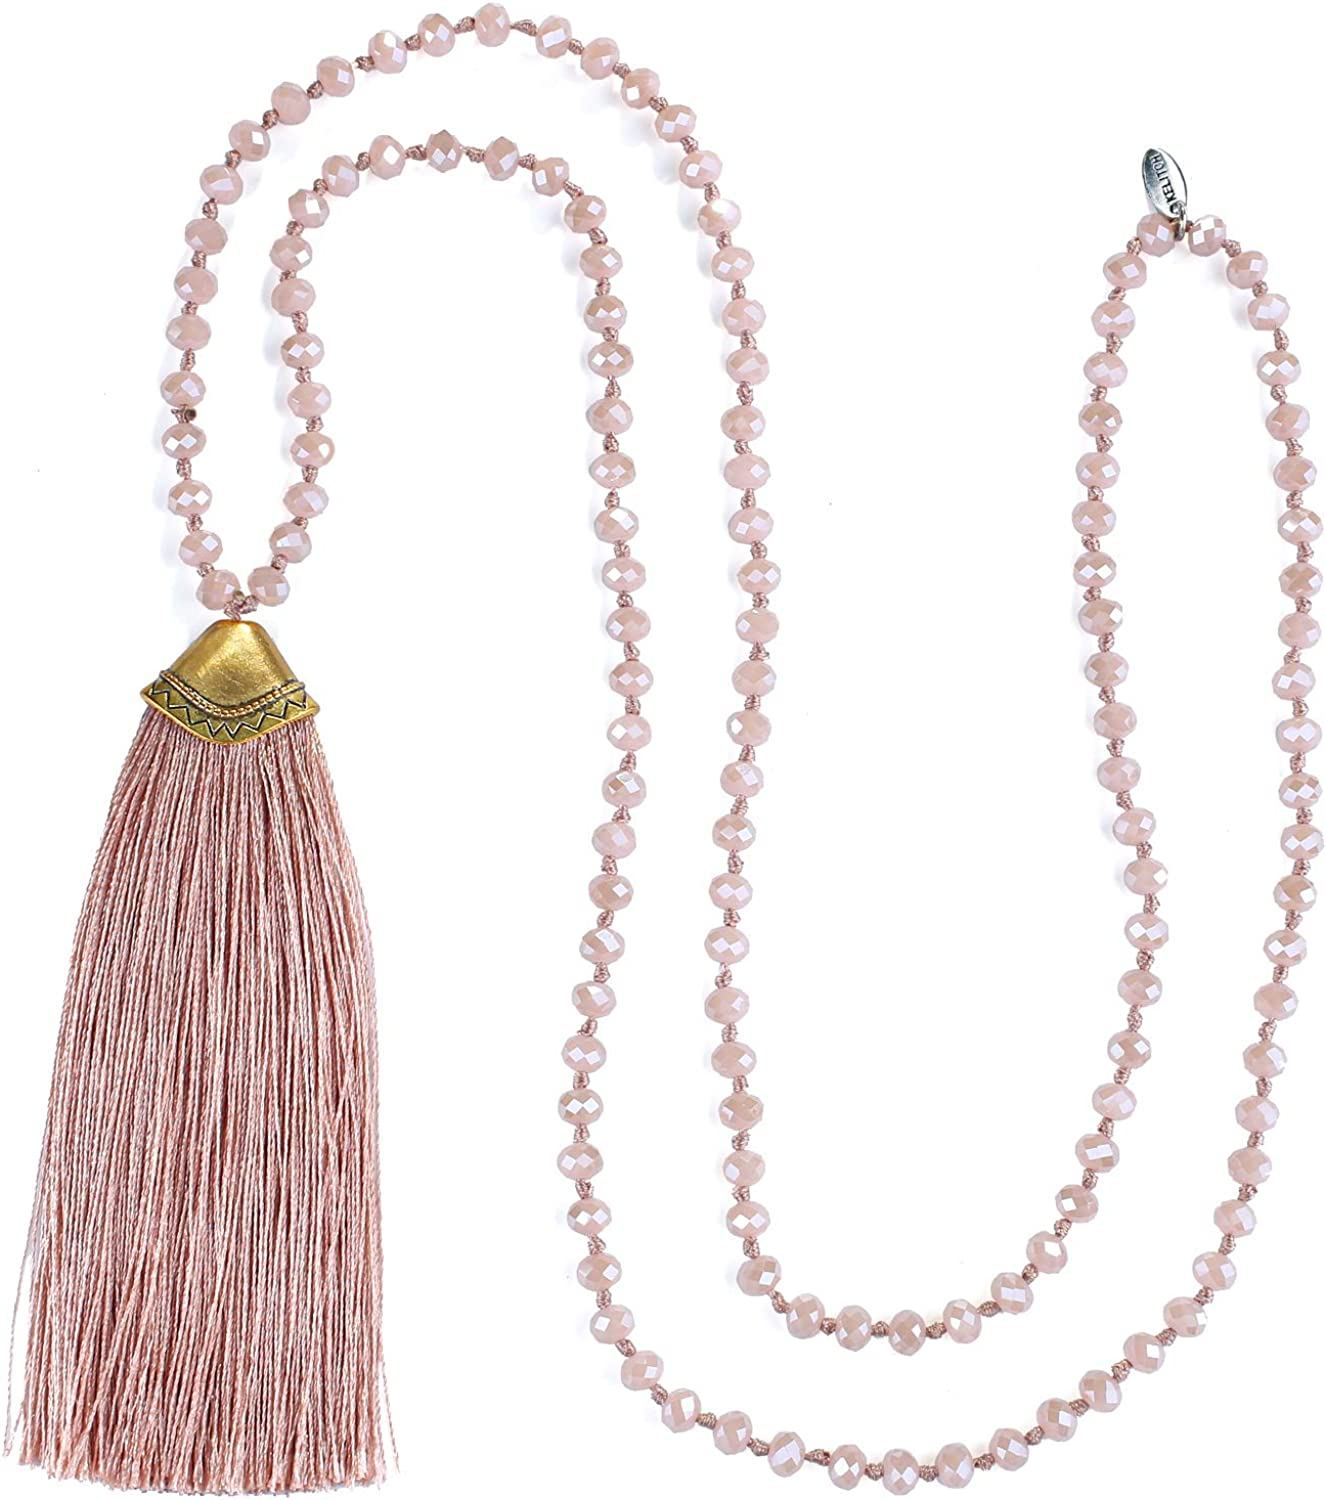 KELITCH Women Crystal Beads Necklaces Handmade Tassel Pendant Necklaces 6MM Crystal Strand Necklace for Women